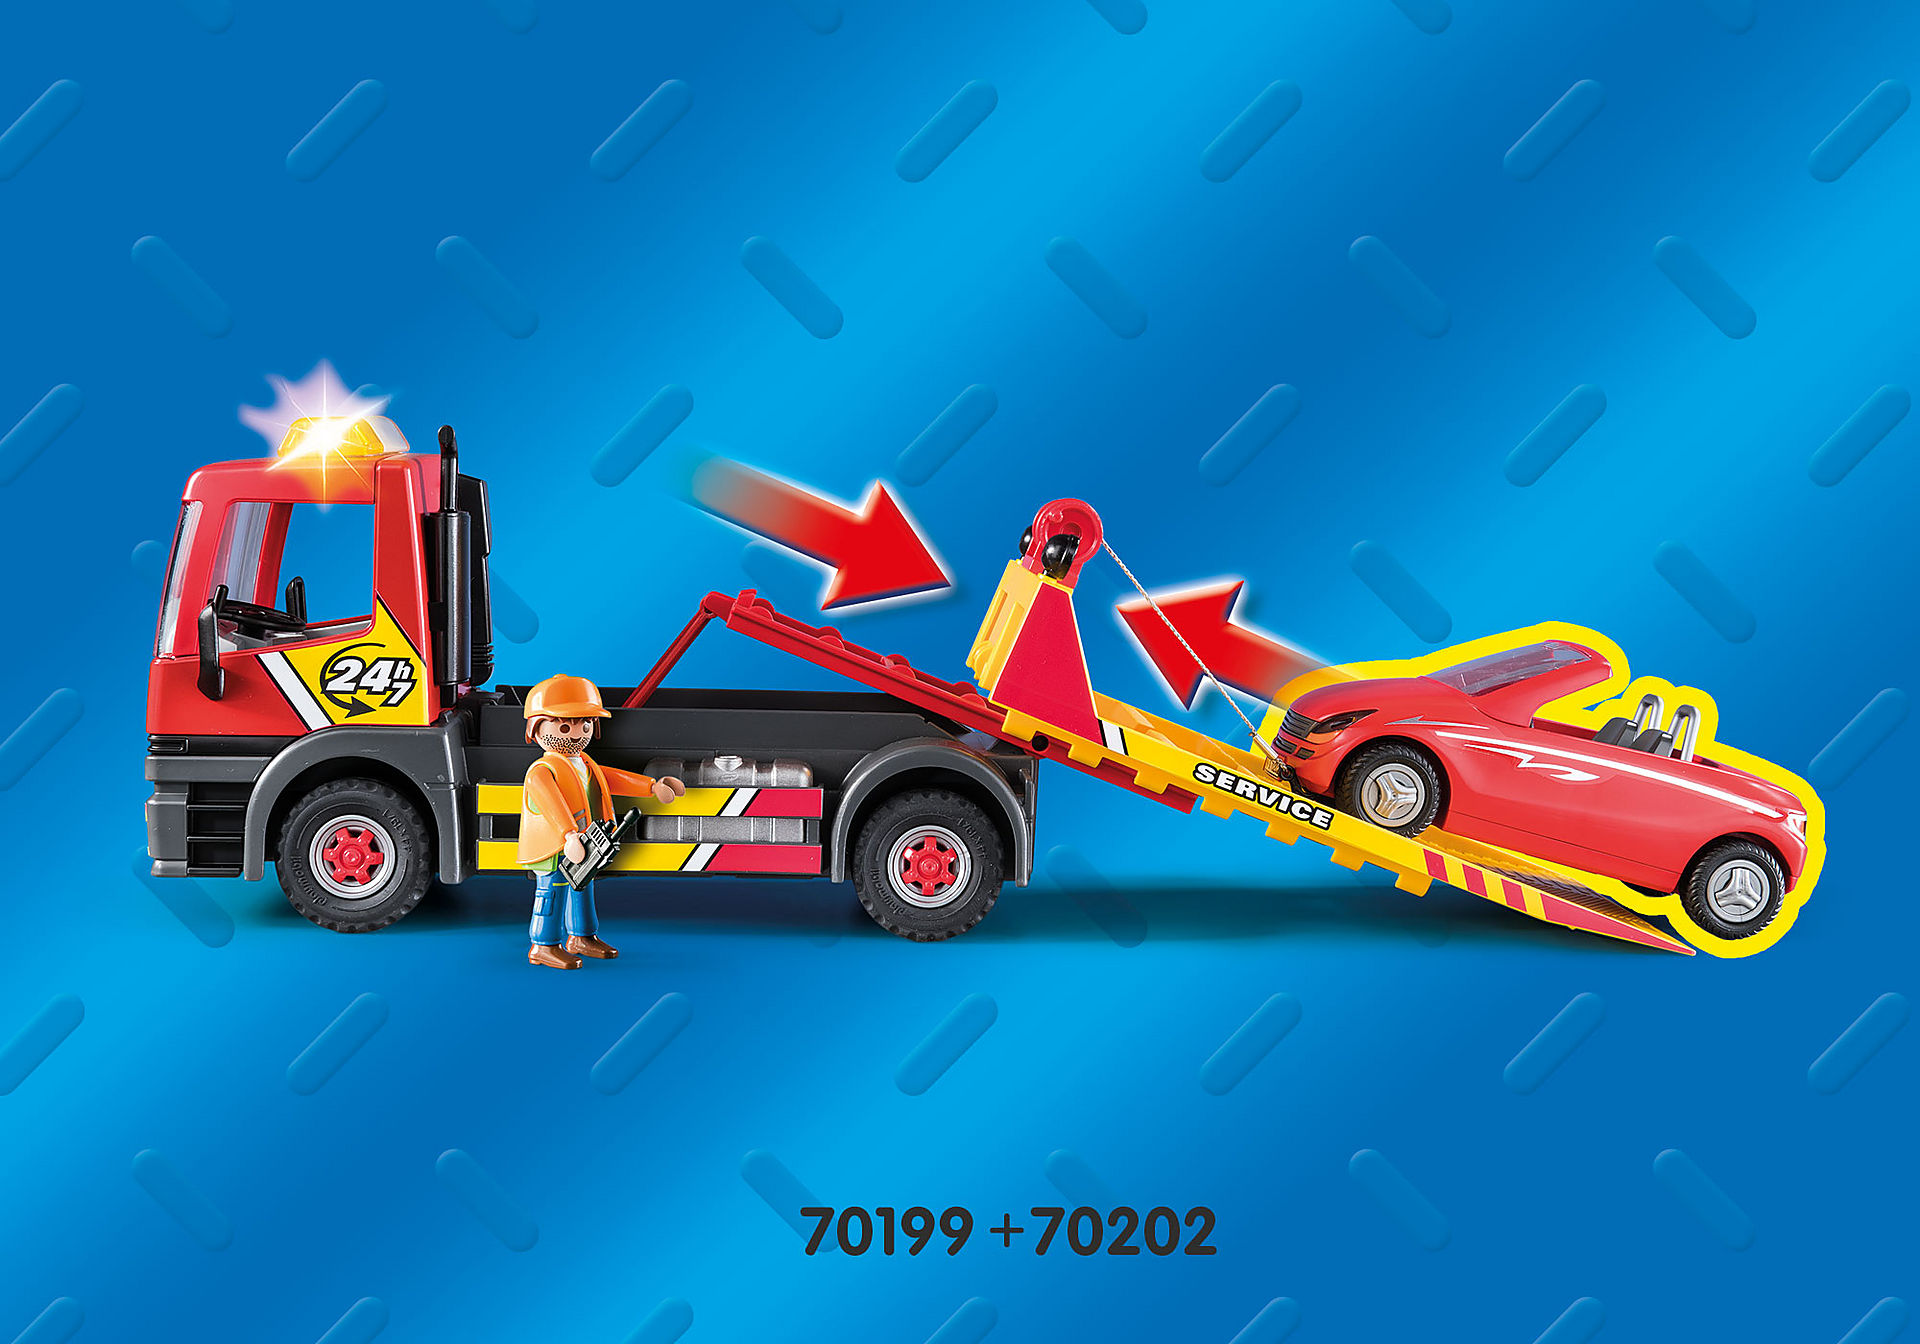 70199 Towing Service zoom image4